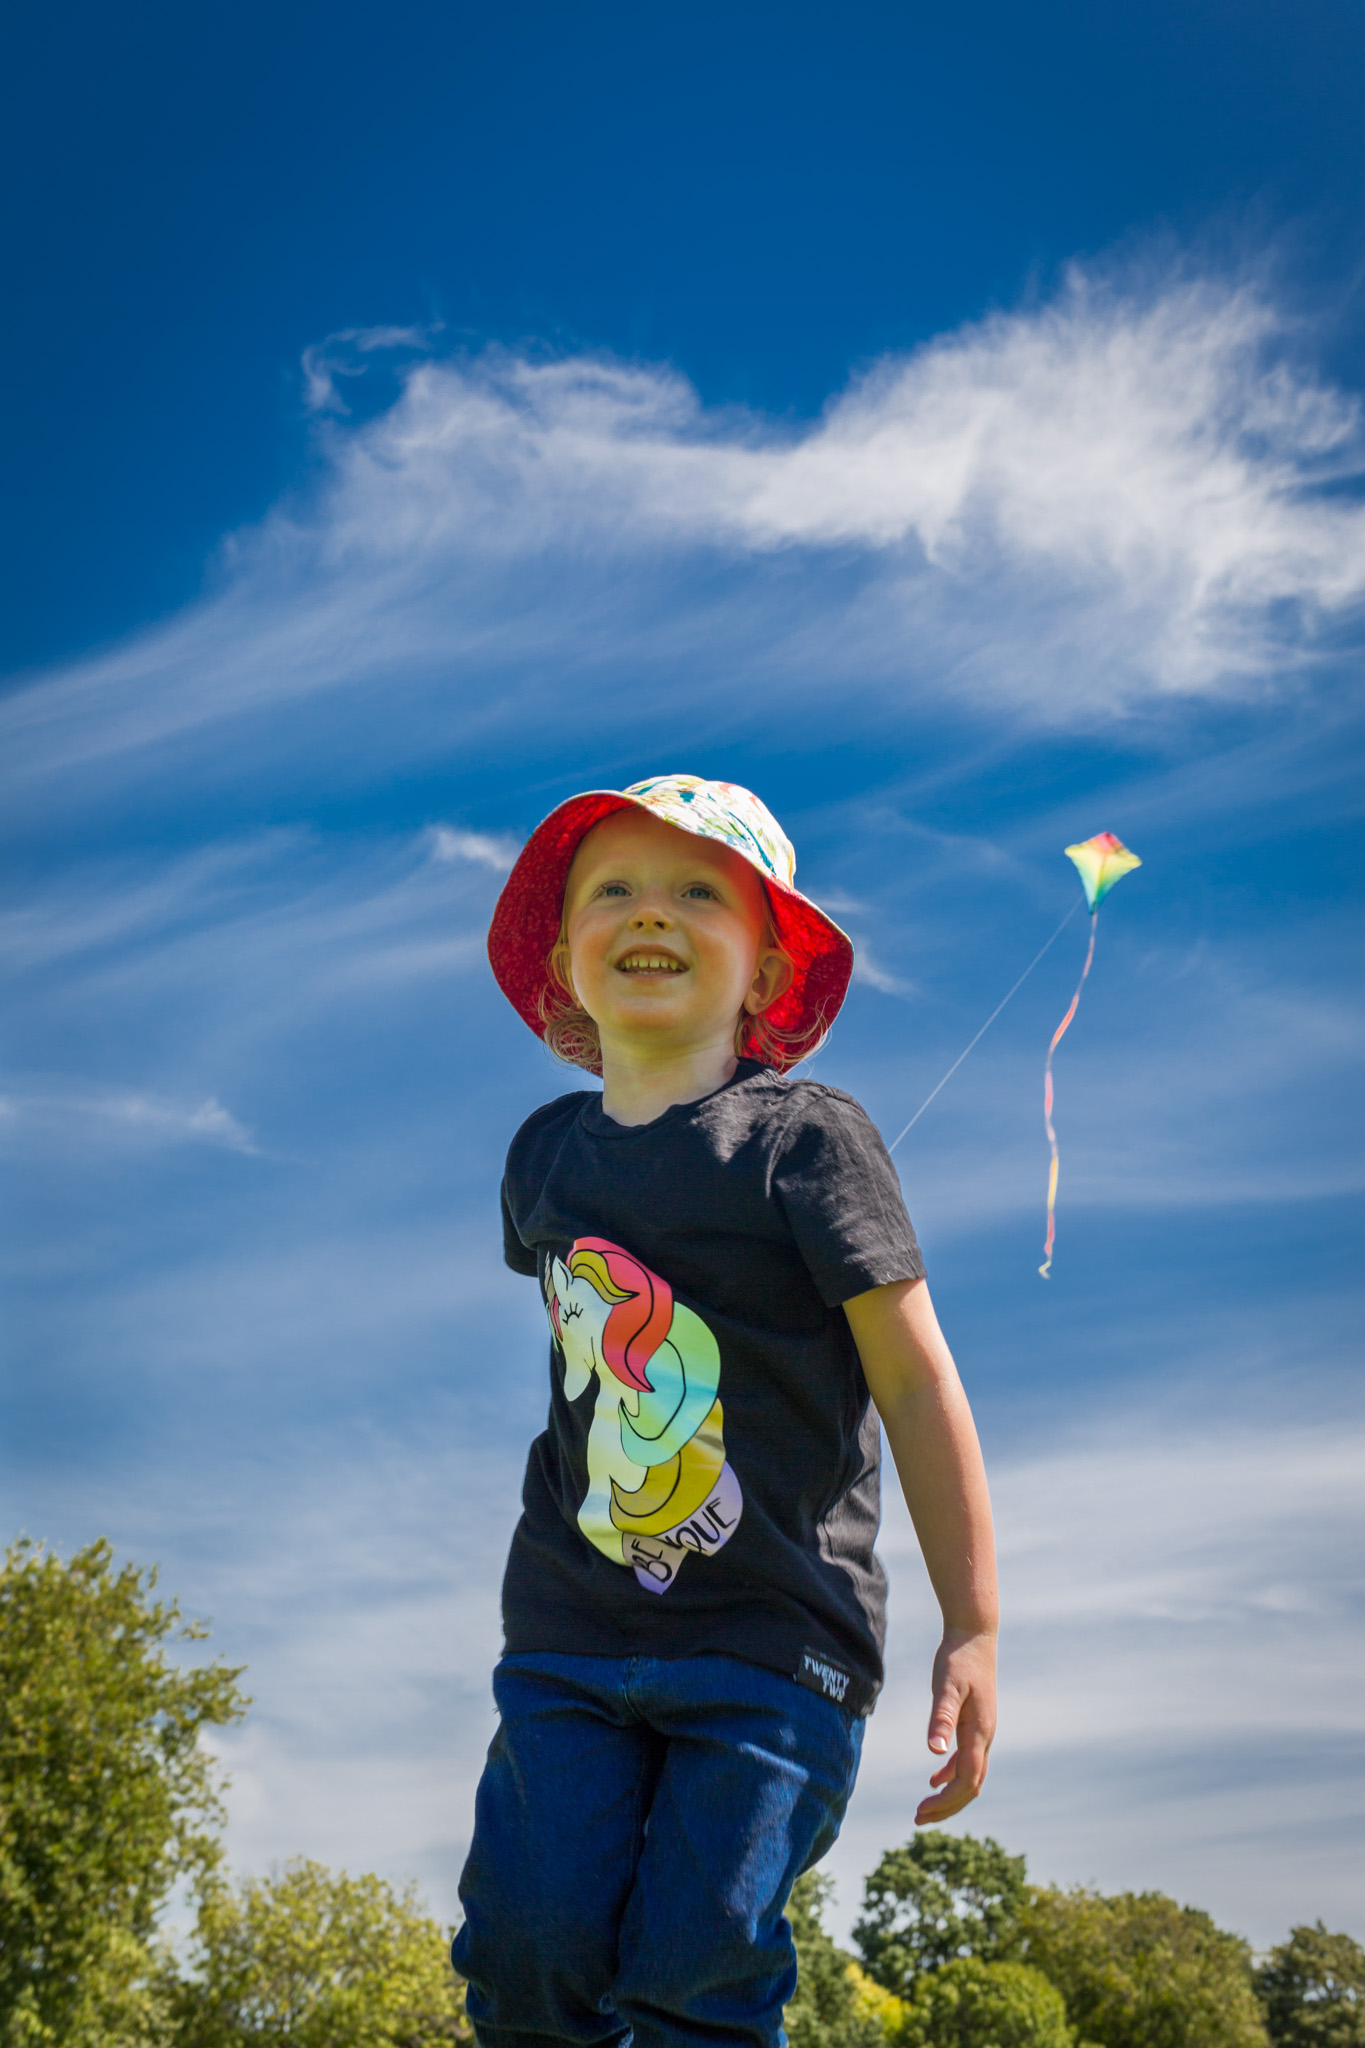 Emily-flying-kite-01.jpg